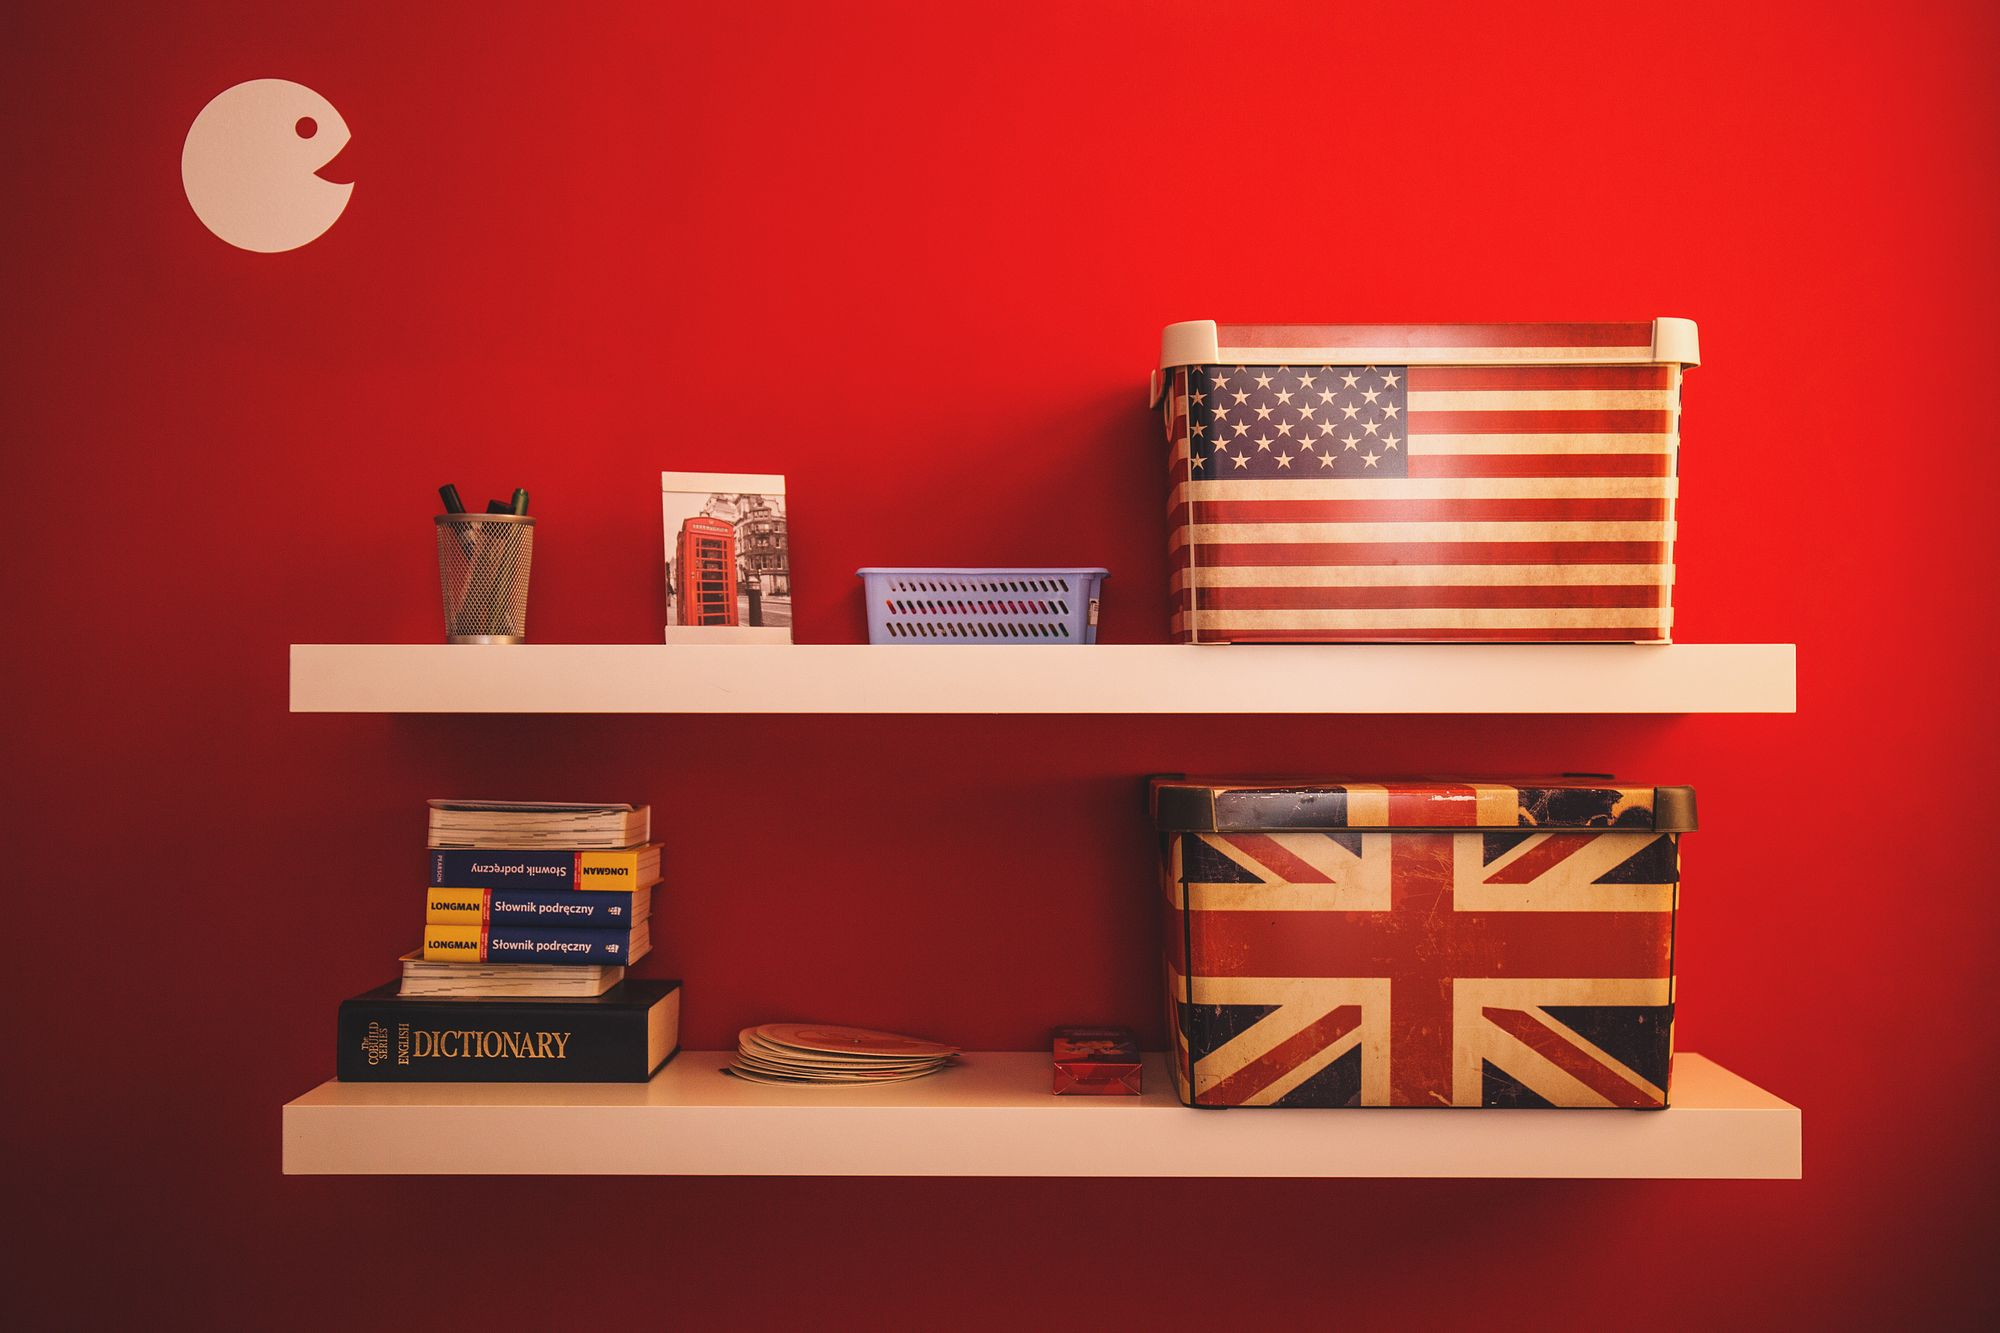 The Ultimate Guide to the Differences Between British English and American English